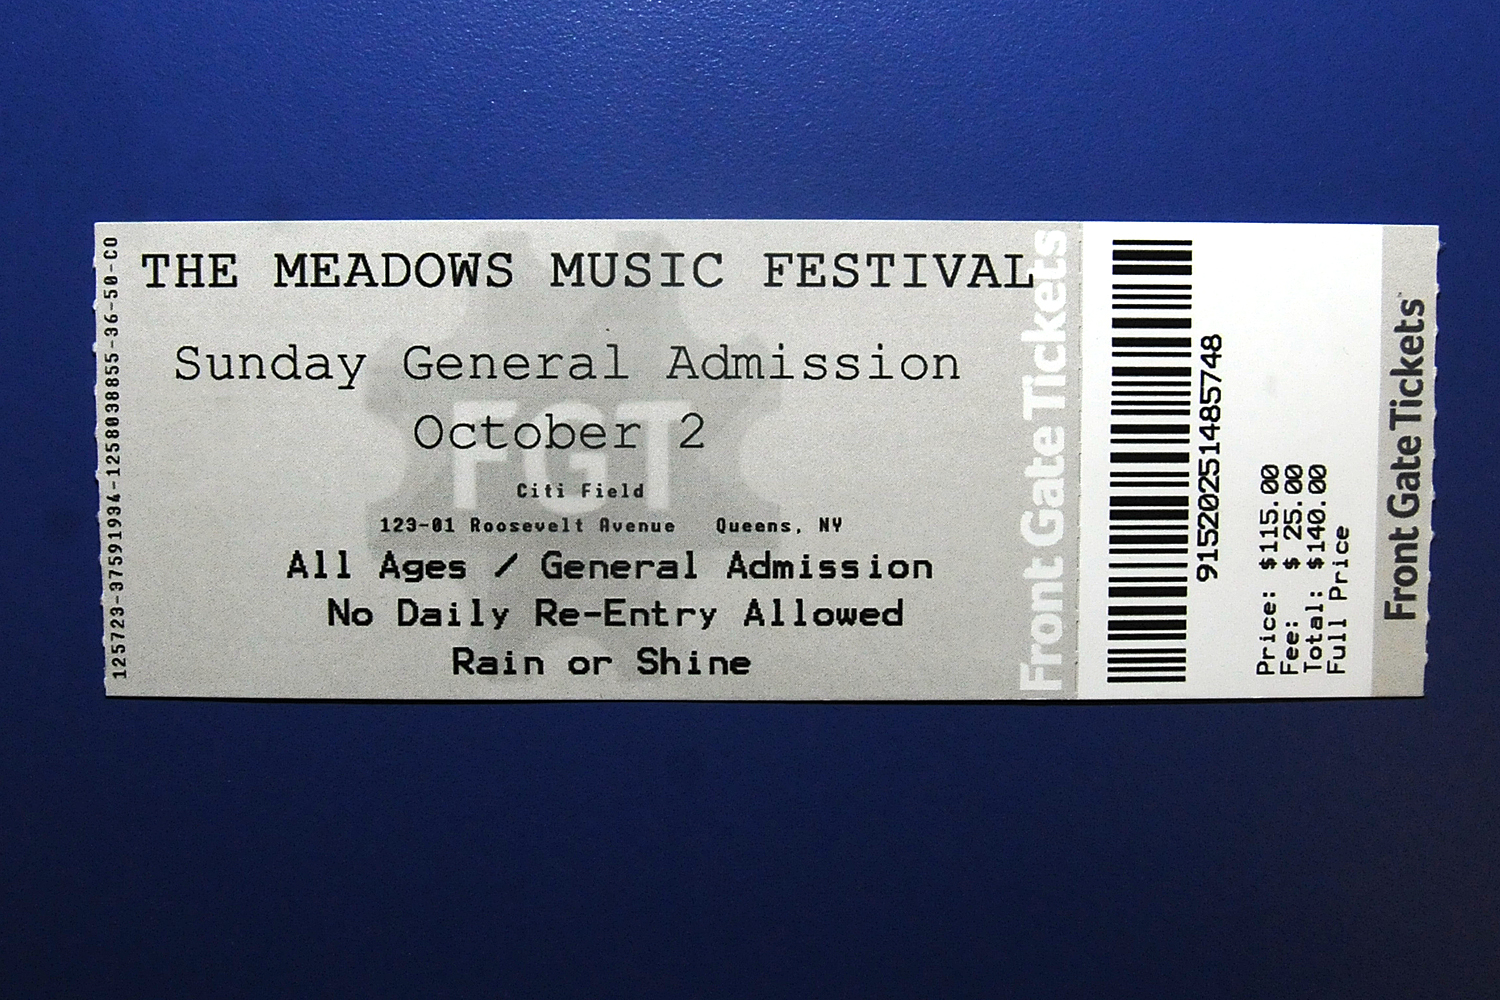 Scammers Trick Fans with Fake Tickets to The Meadows Music Fest – Ticket Maker